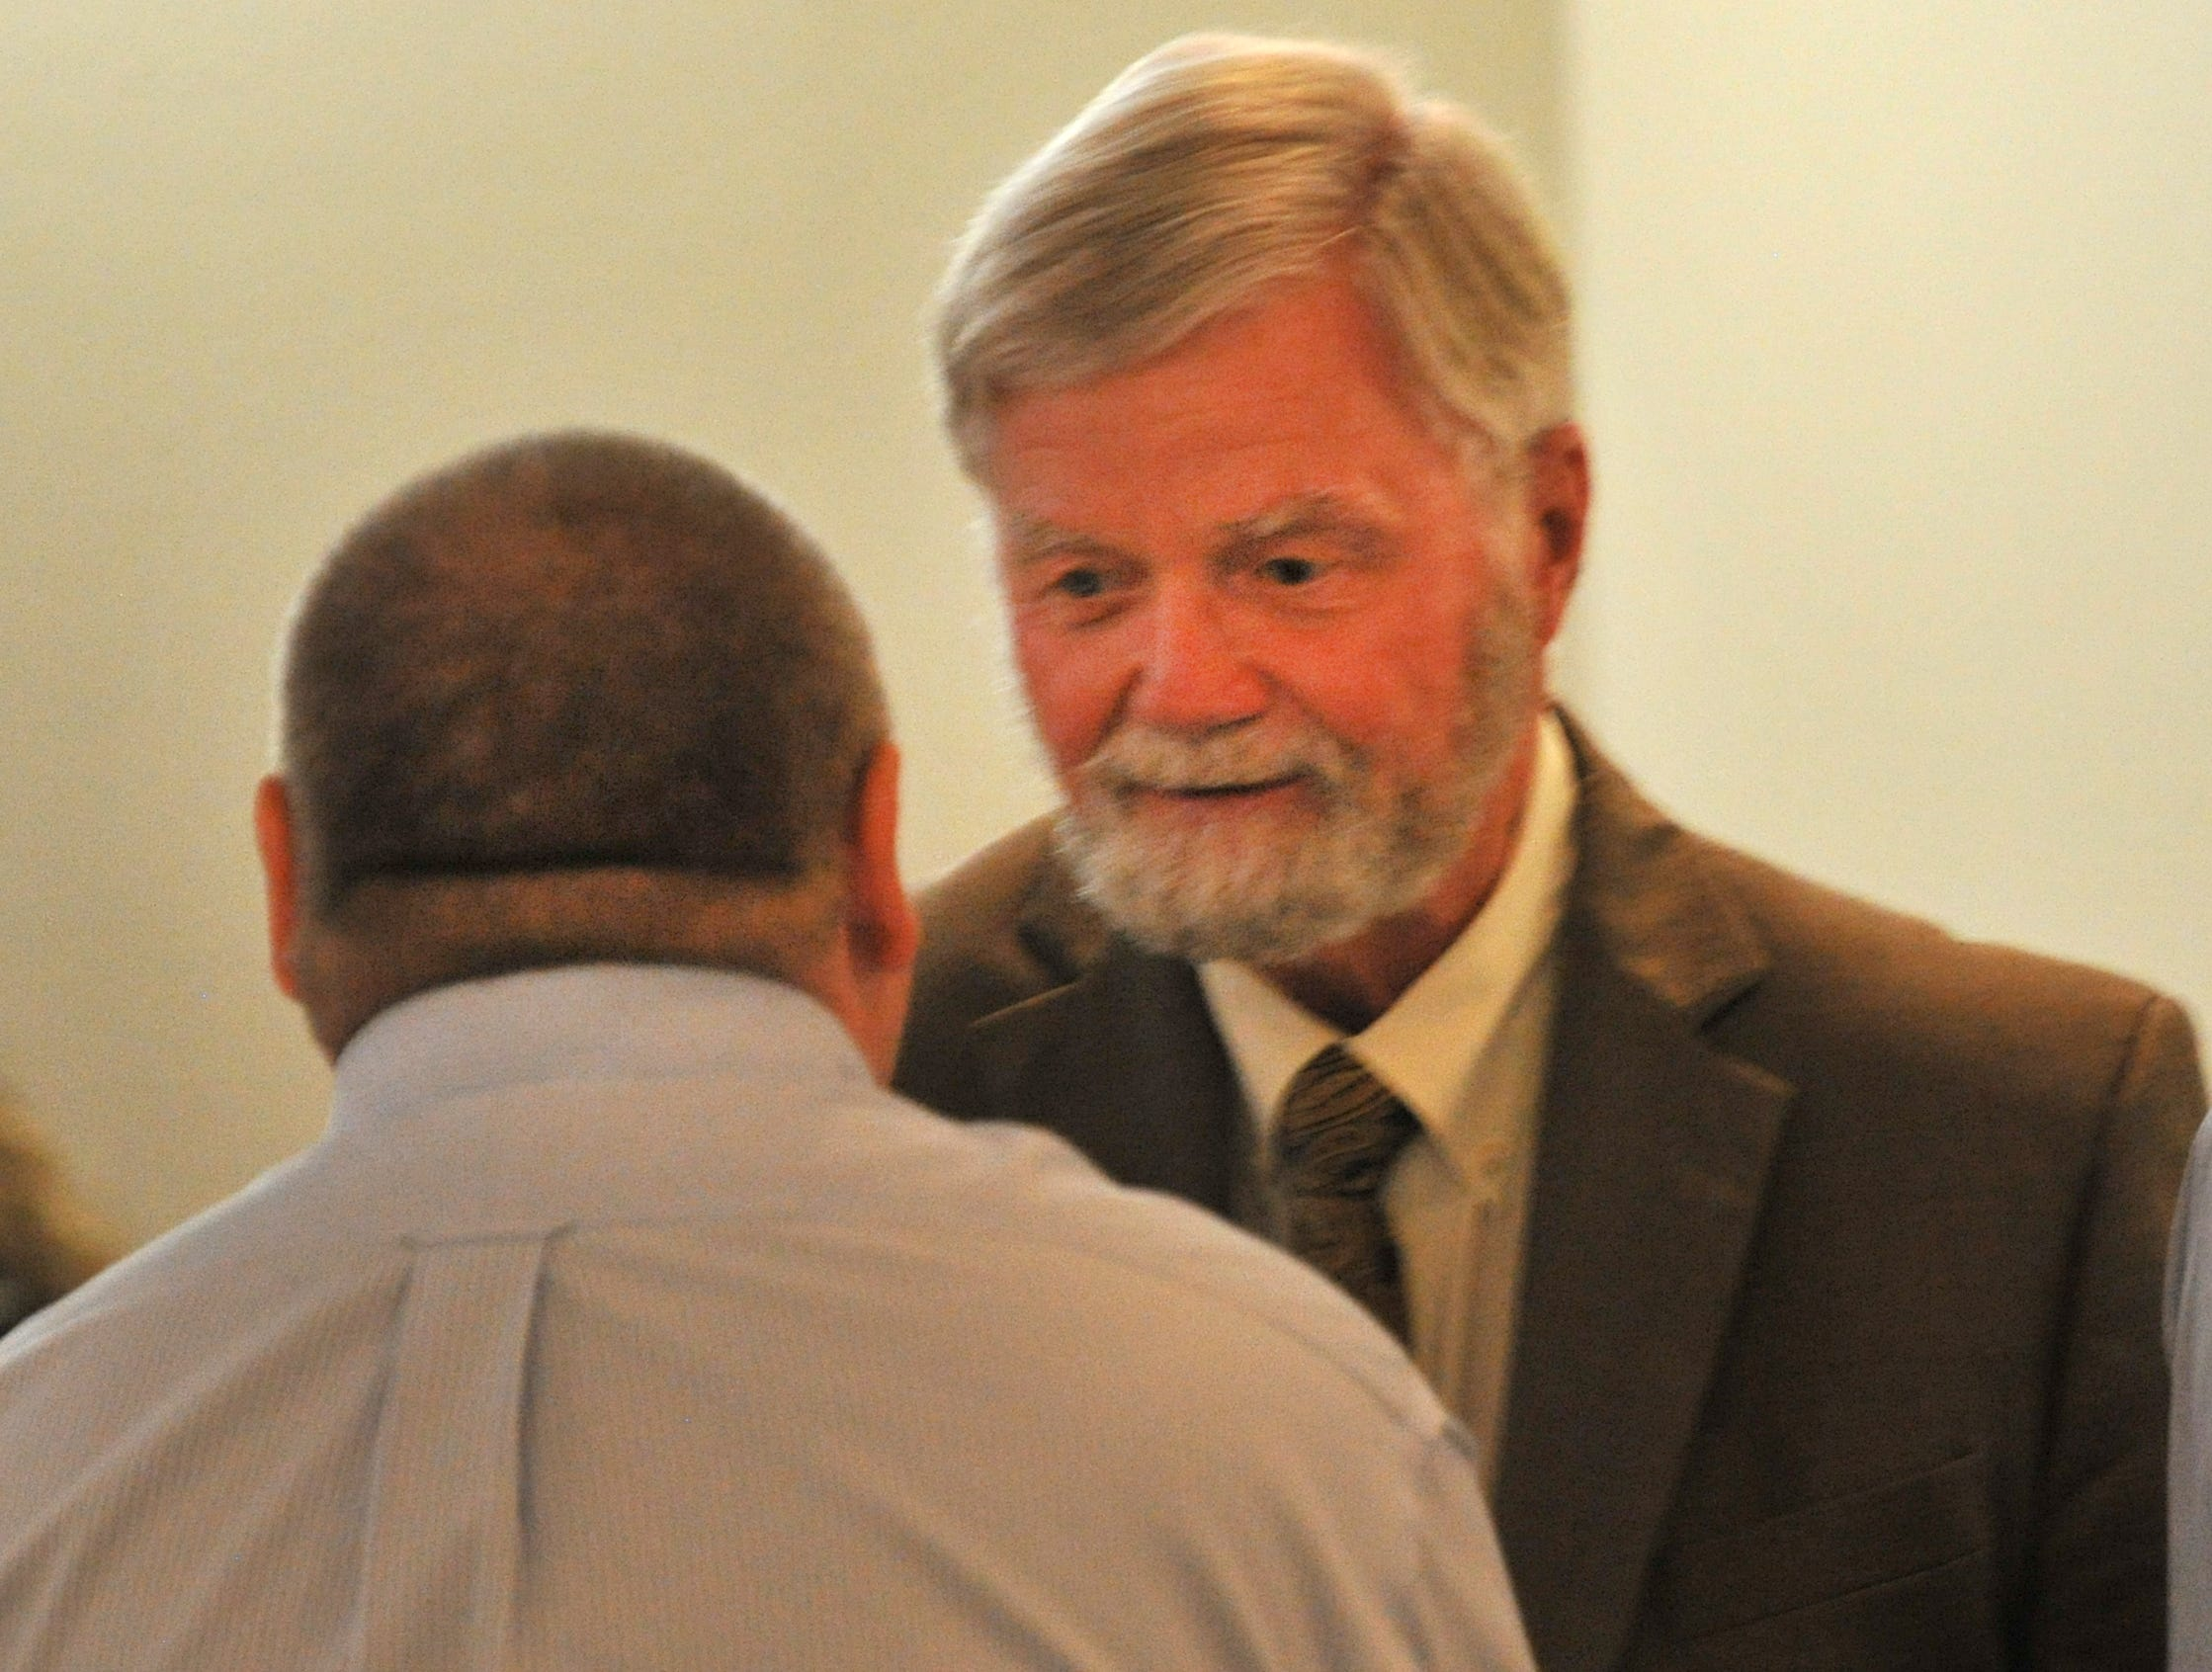 Wichita County Judge Woody Gossom was one of several county dignitaries that attended the idea WF ceremony held at MSU Wednesday.